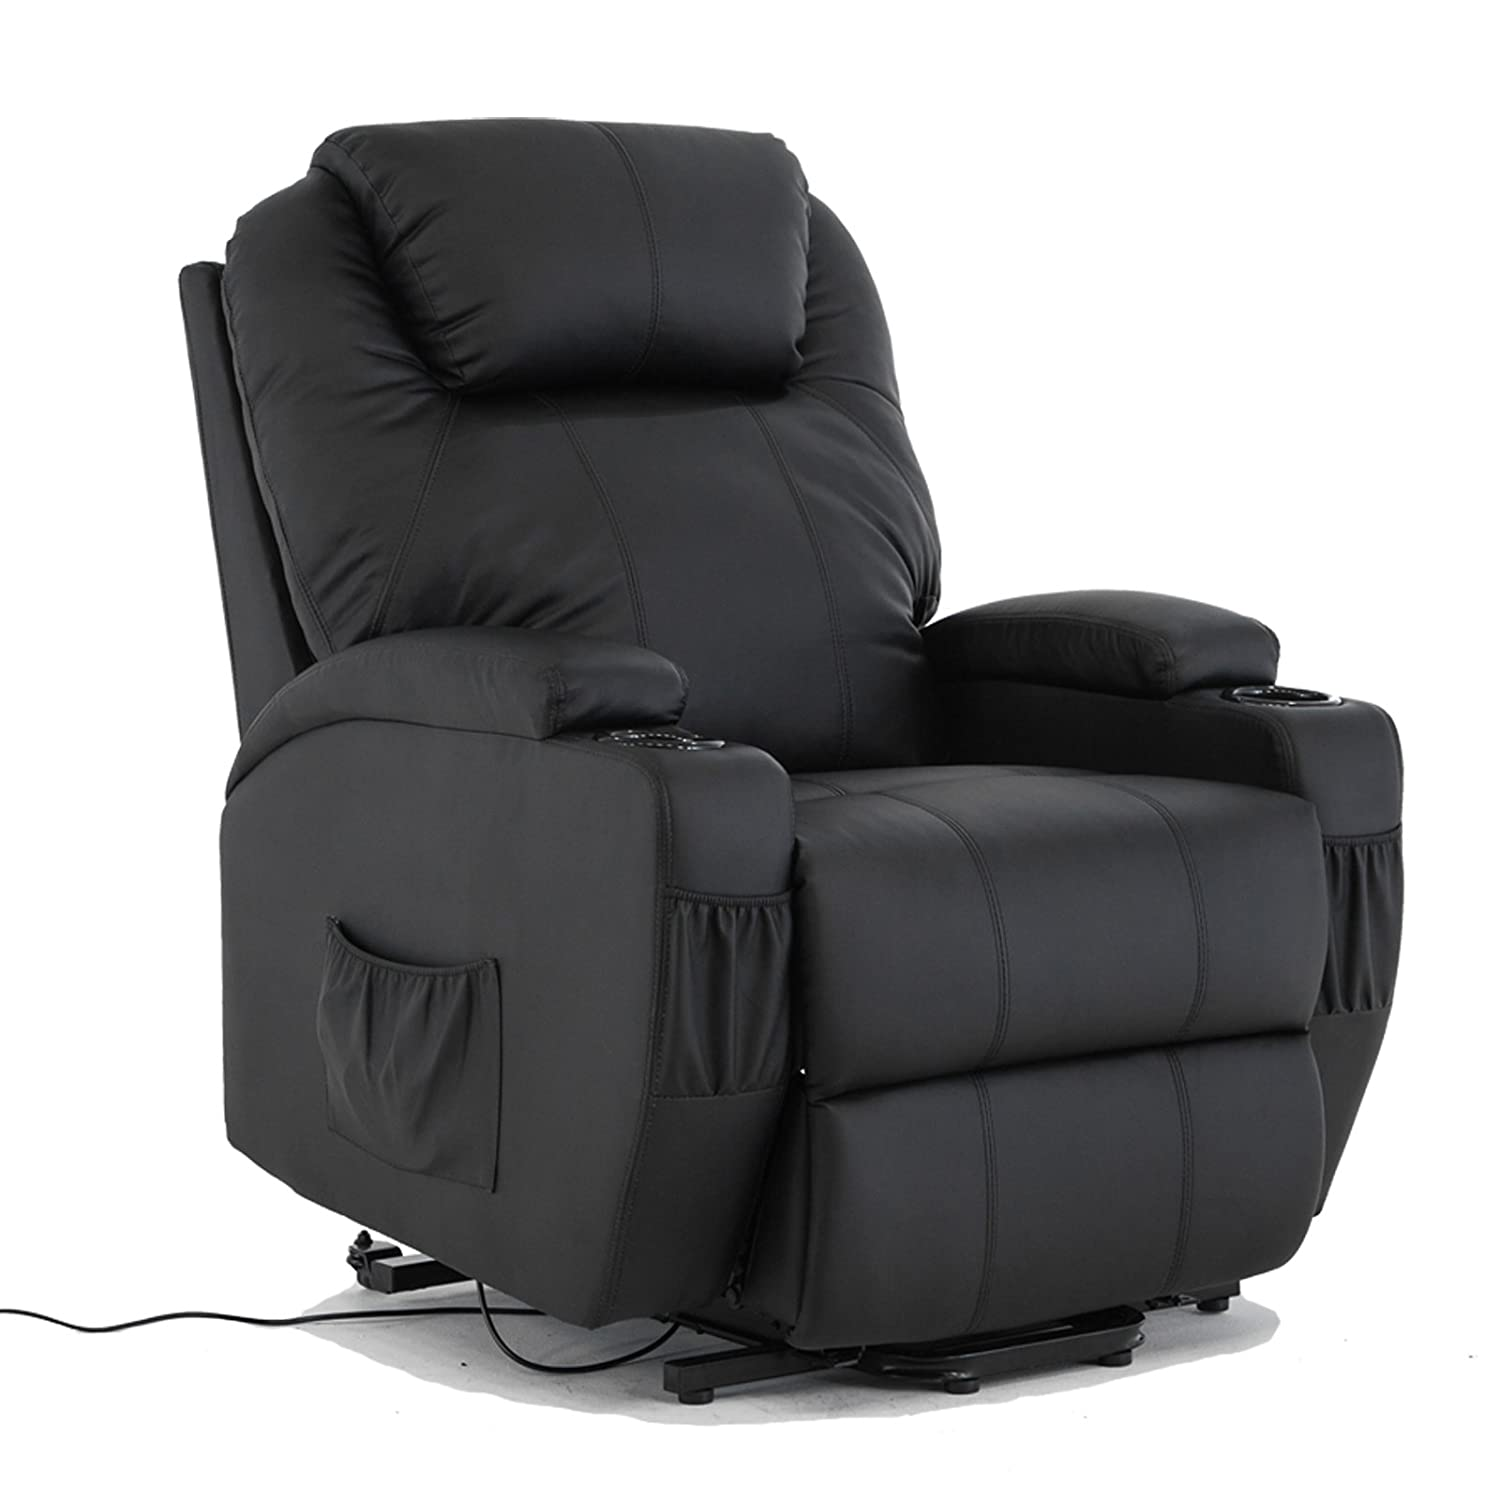 Amazon.com Power Lift Real Leather Recliner chair Wall Hugger Lounge Seat Black Kitchen \u0026 Dining  sc 1 st  Amazon.com : dream lounger recliner - islam-shia.org